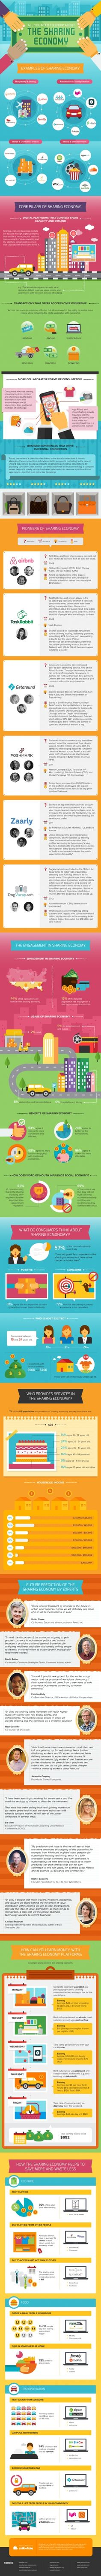 All you need to know about The Sharing Economy Infographic  #Infographics